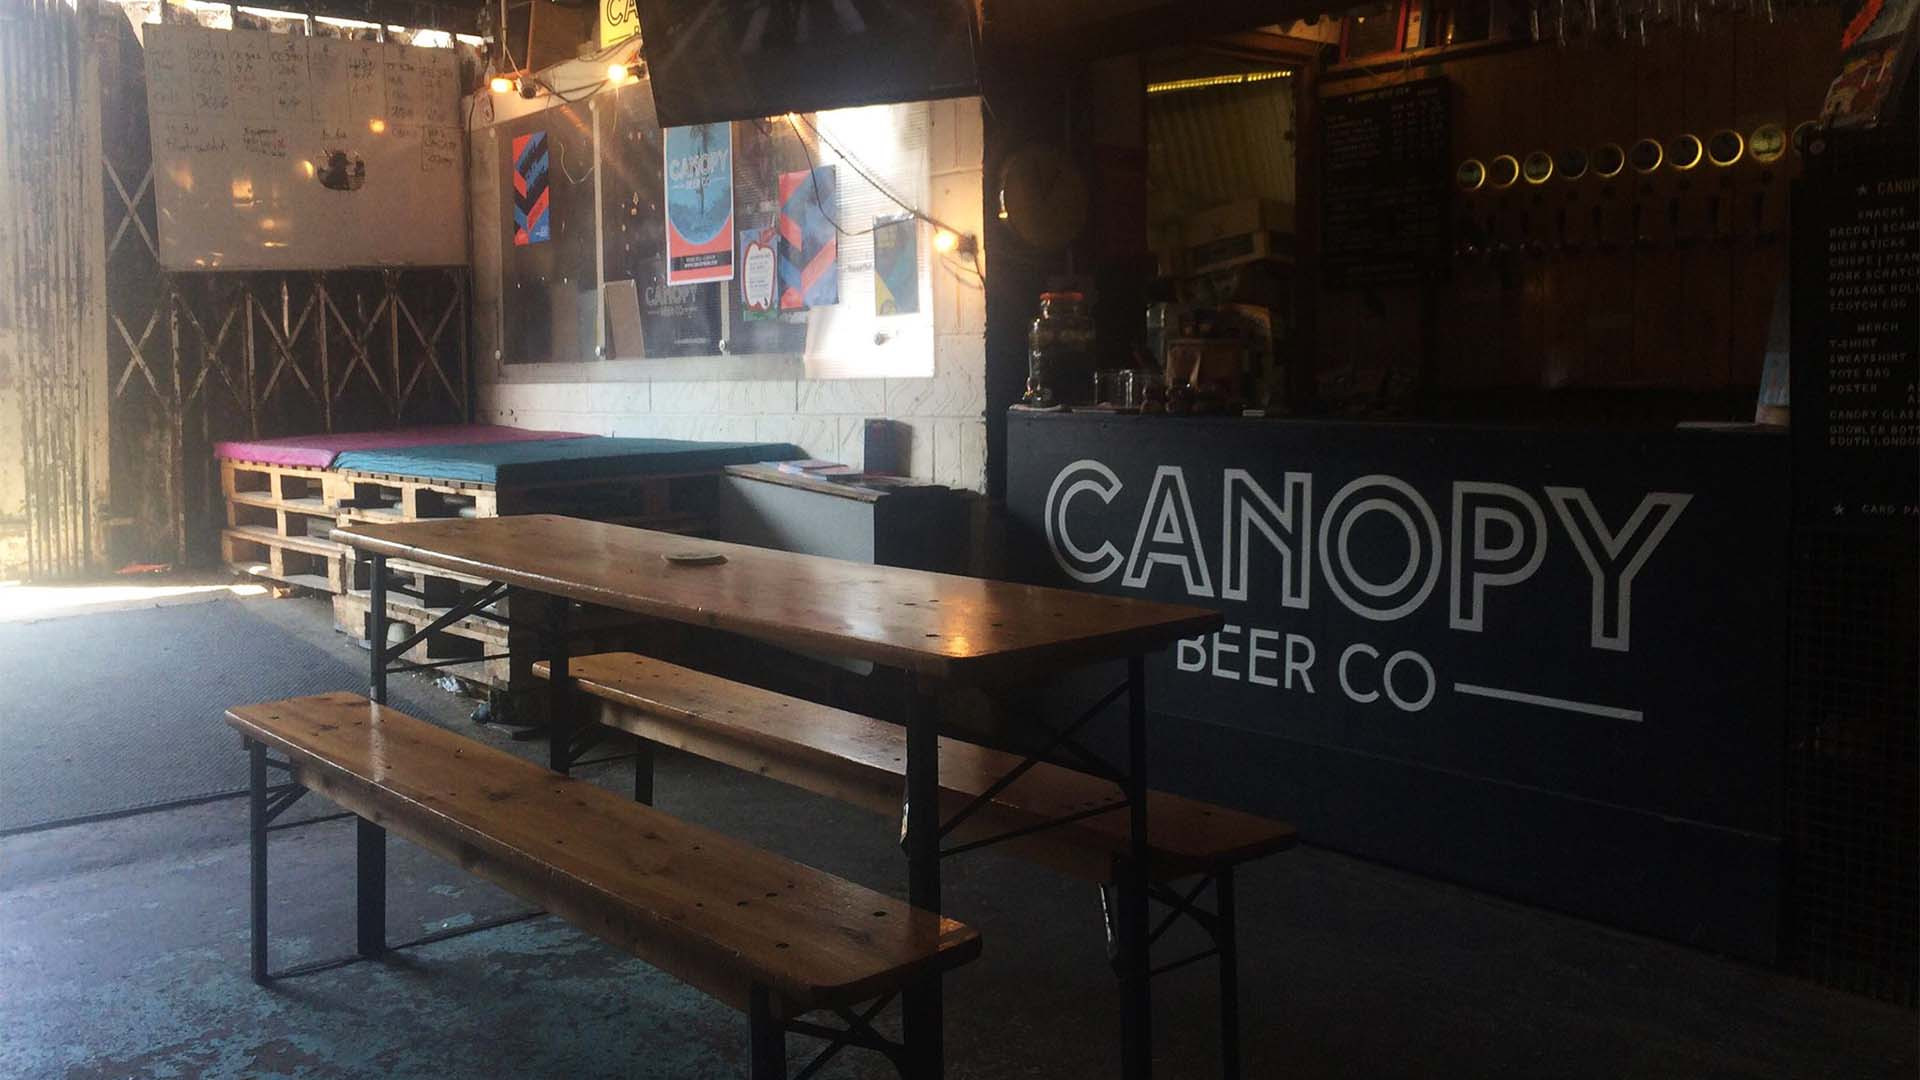 Interior of Canopy Beer Co taproom and brewery in Herne Hill, London